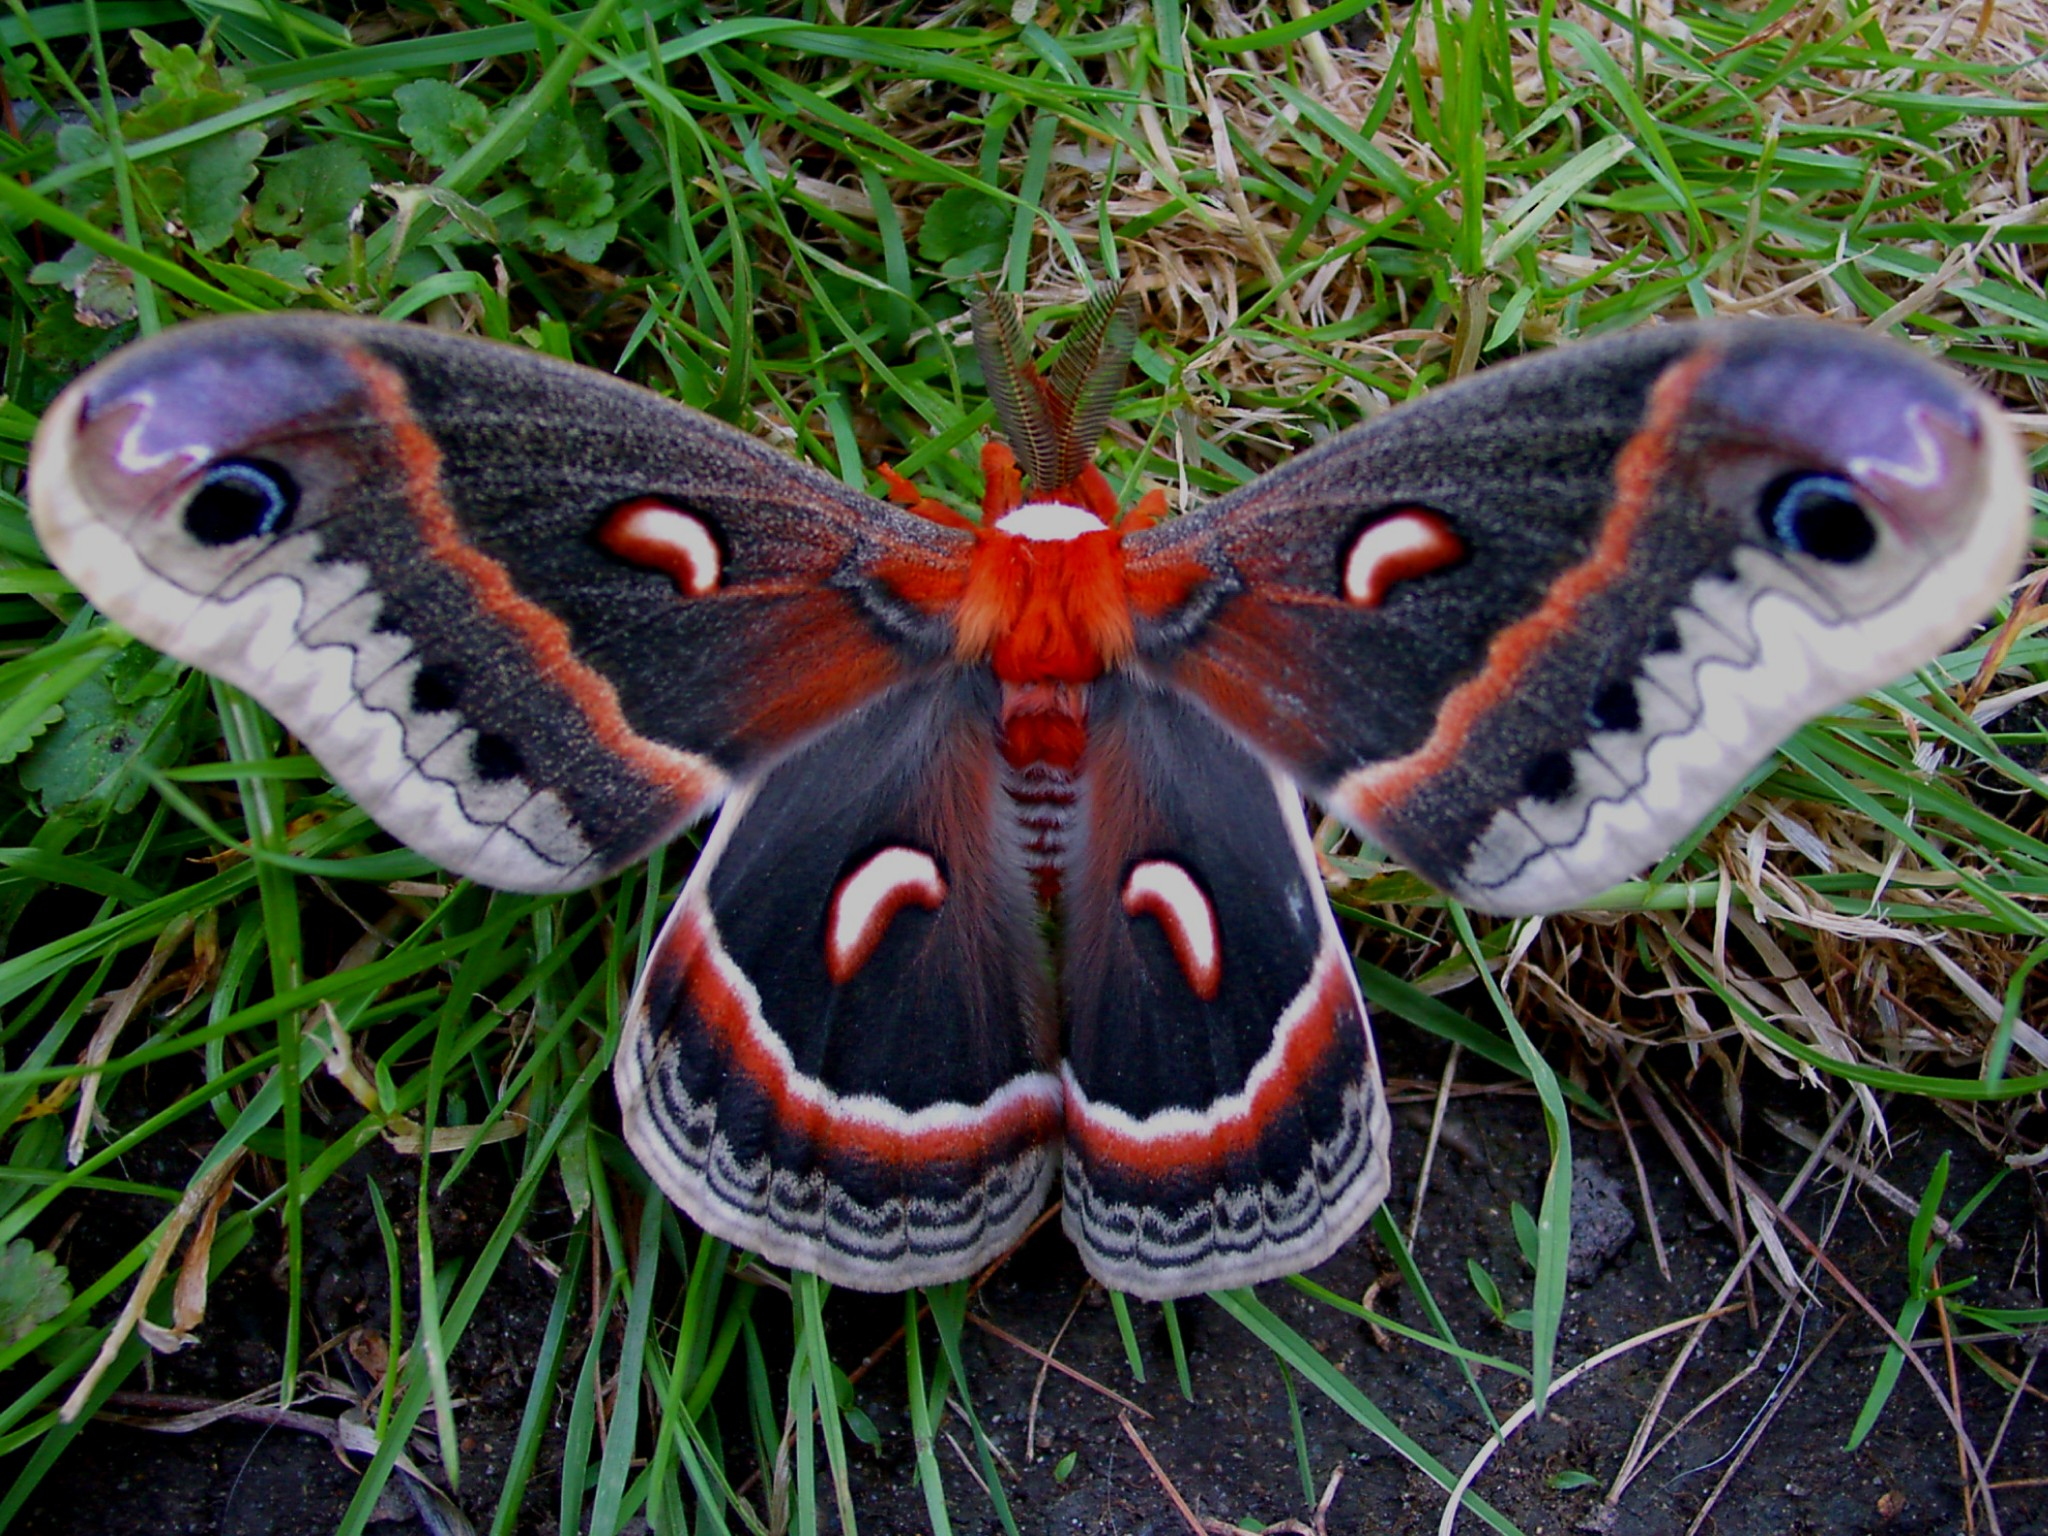 moth poetry Famous moths poems by famous poets these are examples of famous moths poems written by well-known modern and classical poets poetrysoup is a great educational poetry resource of famous moths poems.